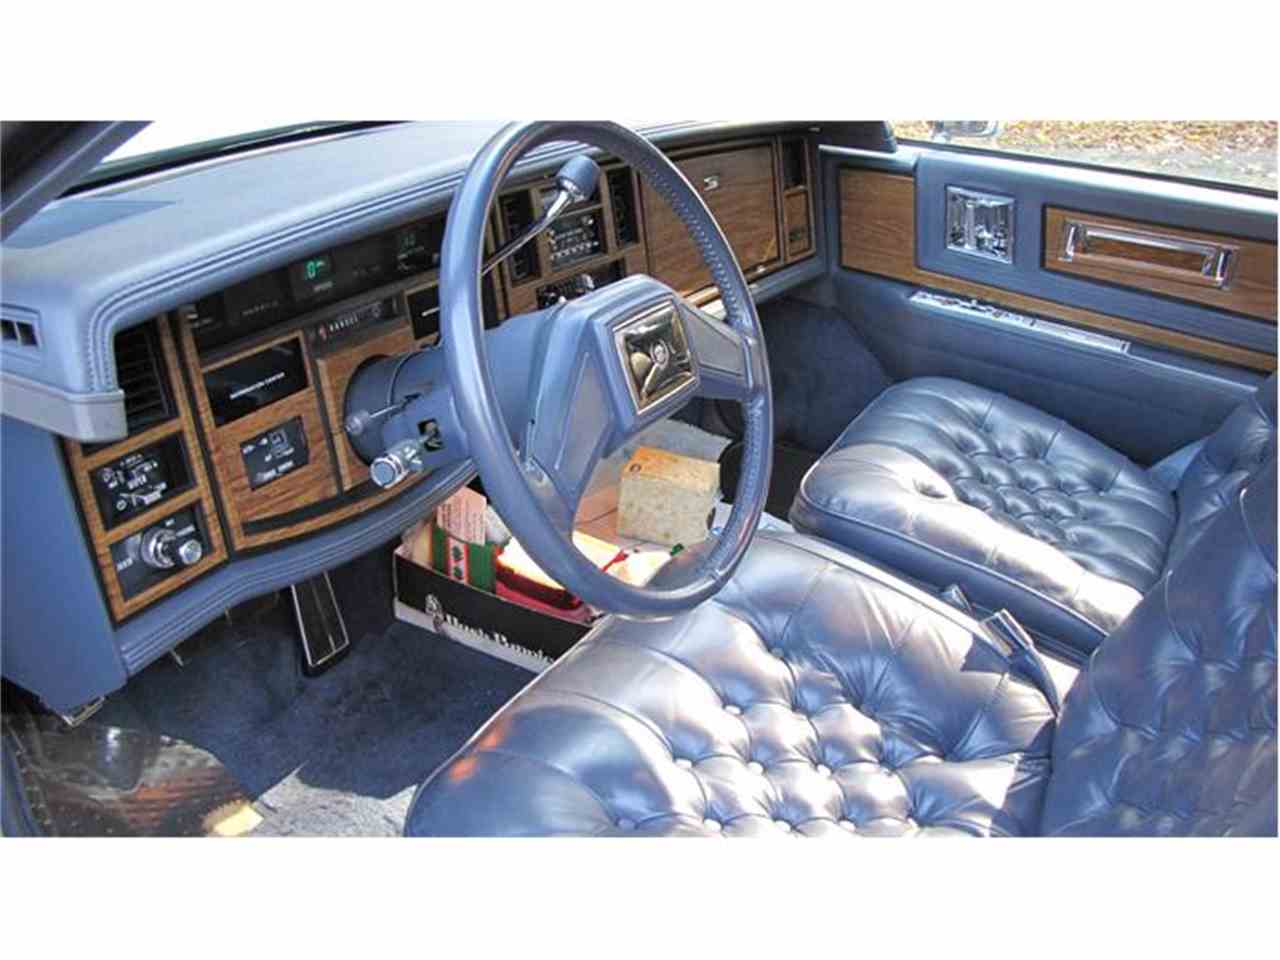 Large Picture of '84 Eldorado Biarritz located in Ohio - $15,000.00 Offered by a Private Seller - 7FZZ